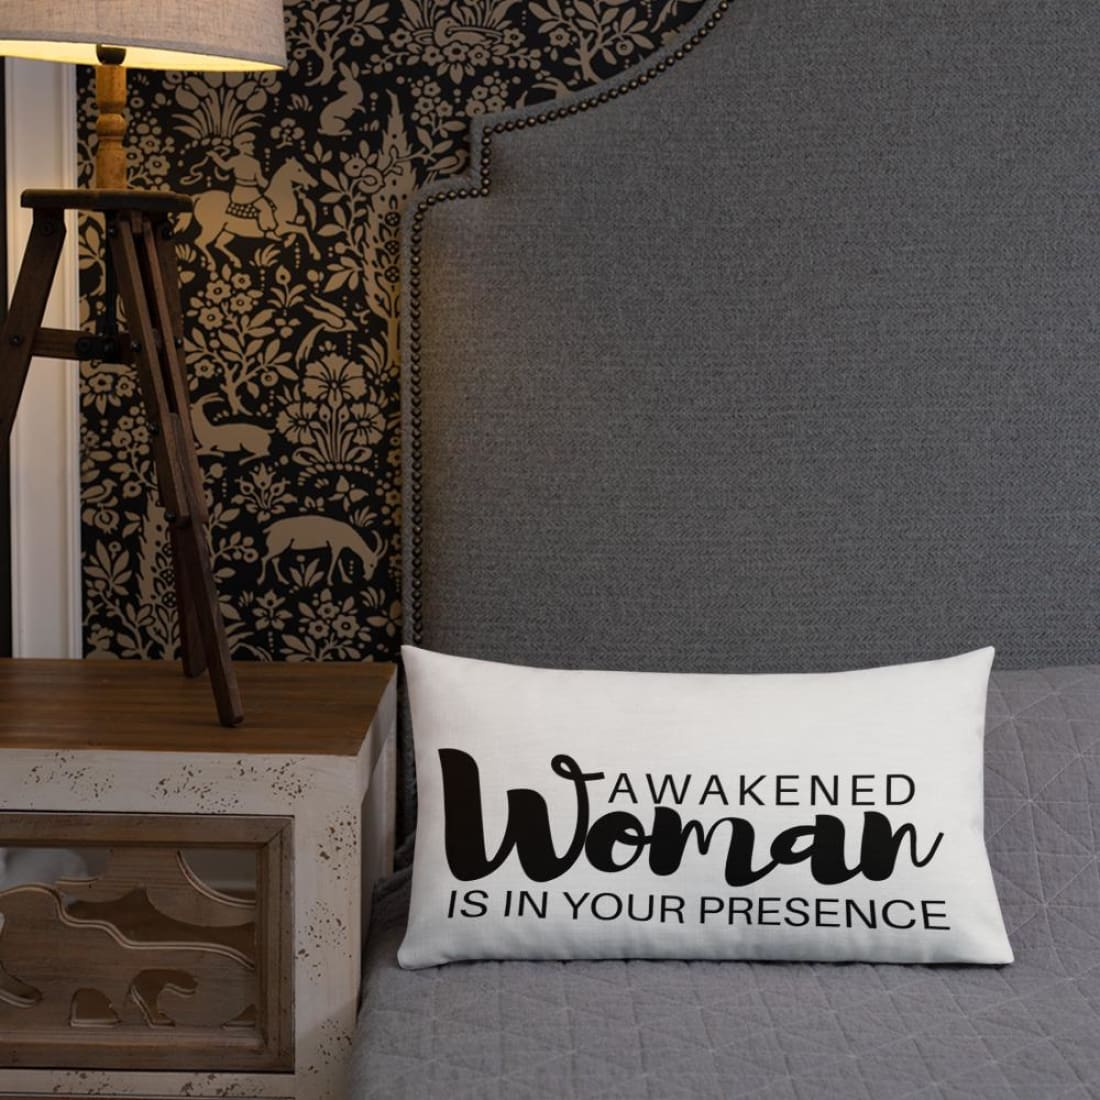 Awakened Woman Is In Your Presence Premium Throw Pillow - Pillow